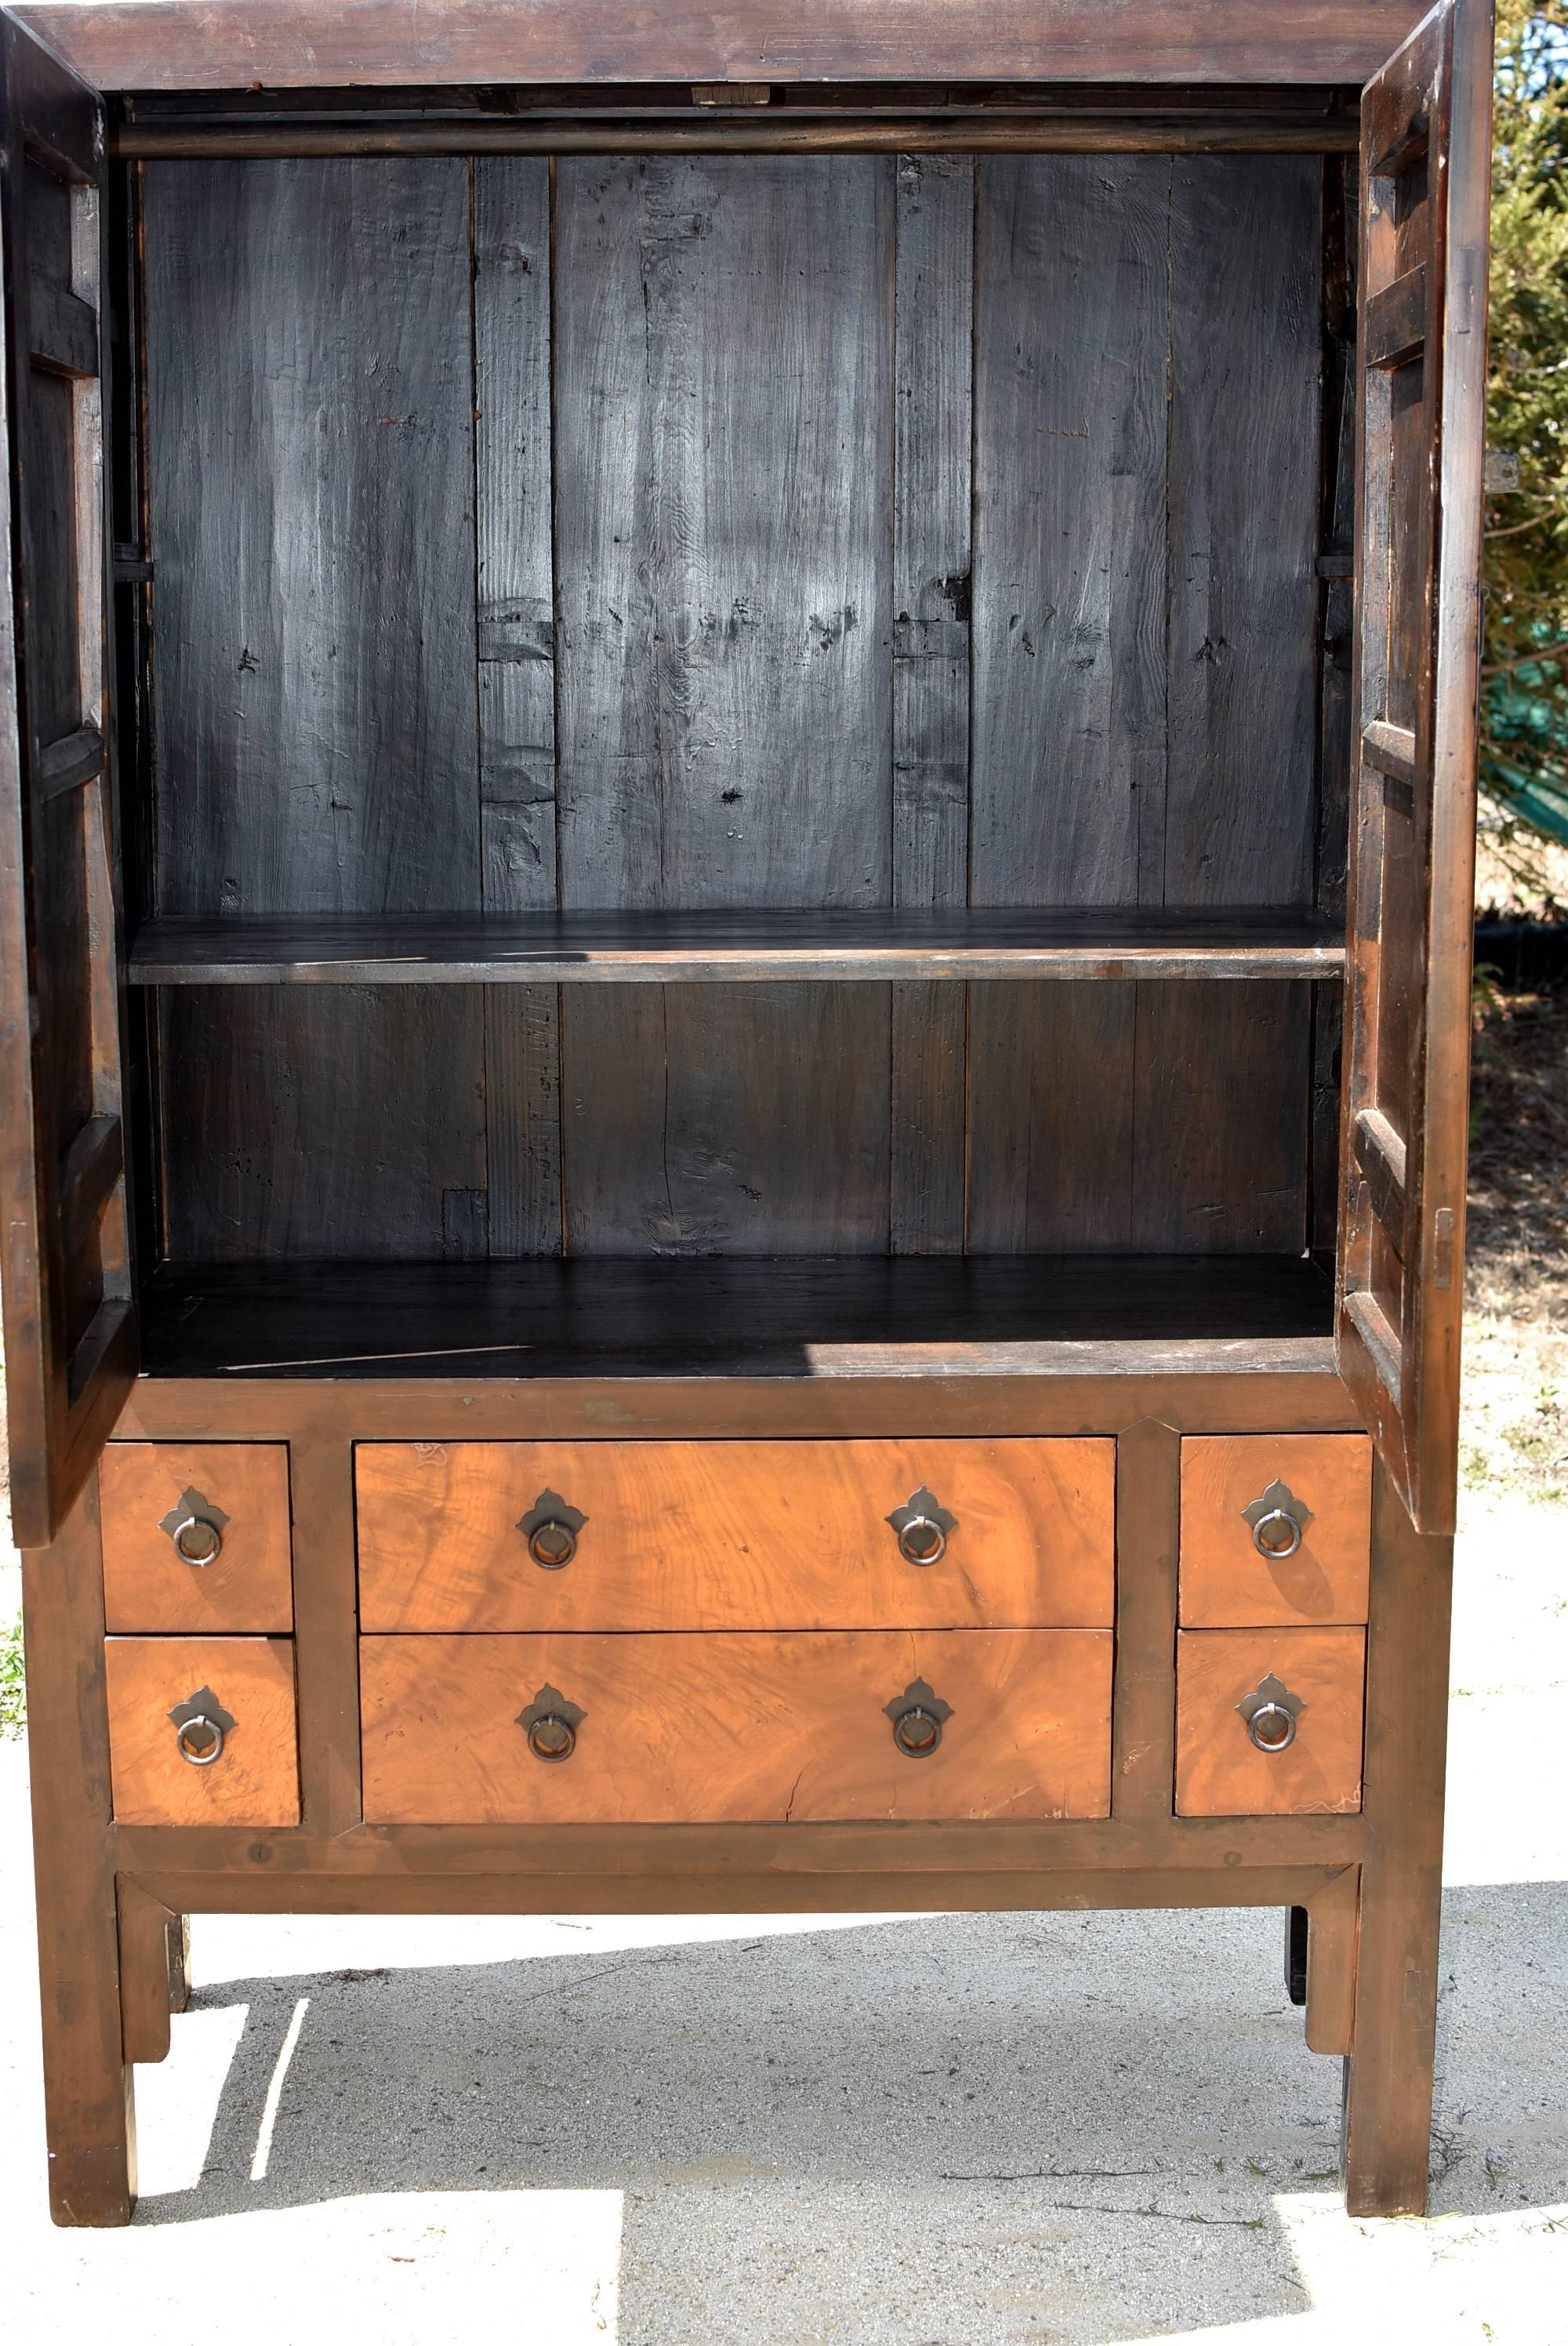 Joinery Large Burl Wood Armoire, Brown And Gold Burl Wood Cabinet For Sale